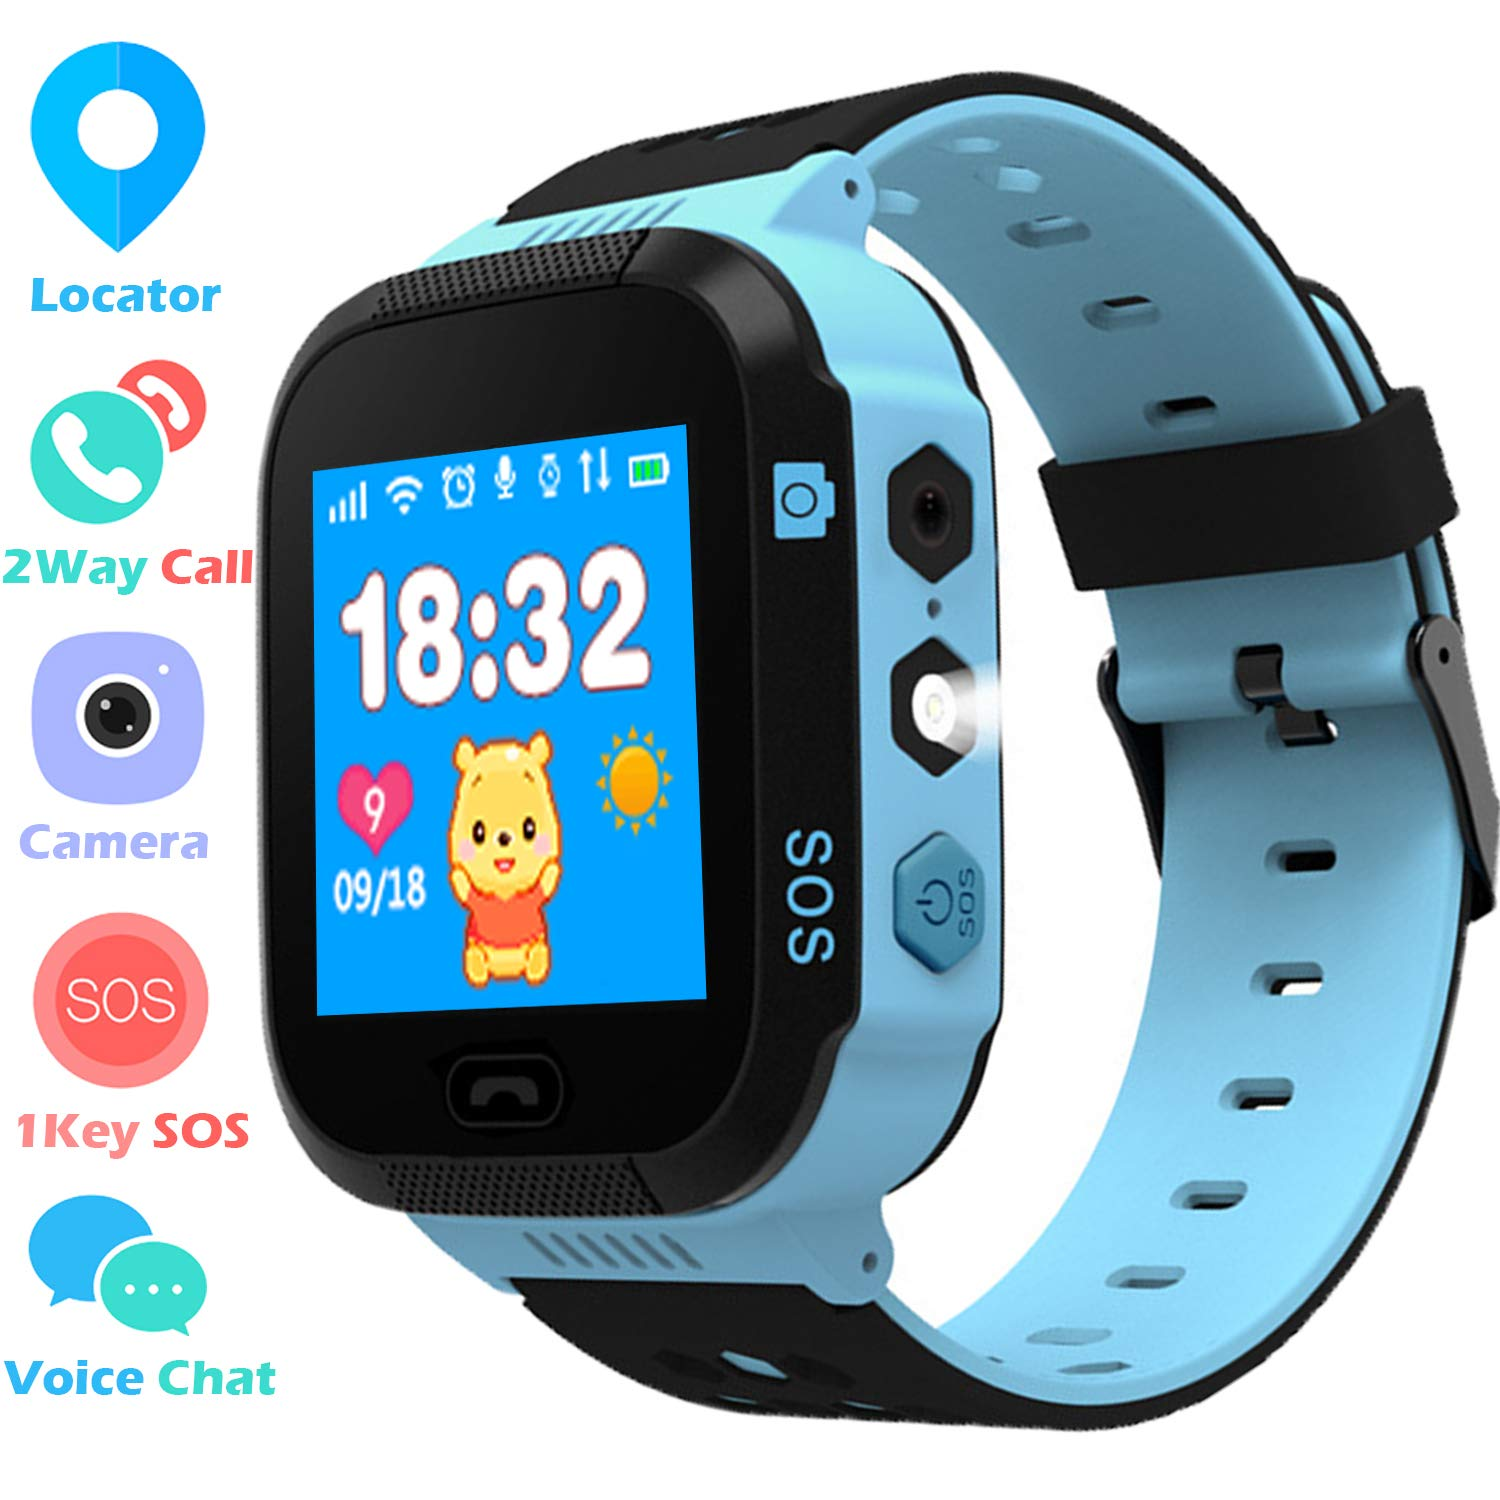 Kids GPS Tracker Watch for Boys Girls – Smart Wrist Watch with GPS Location SOS Digital Watch Camera Flashlight Games for Children Compatible with iPhone/Android Kids Smartwatch